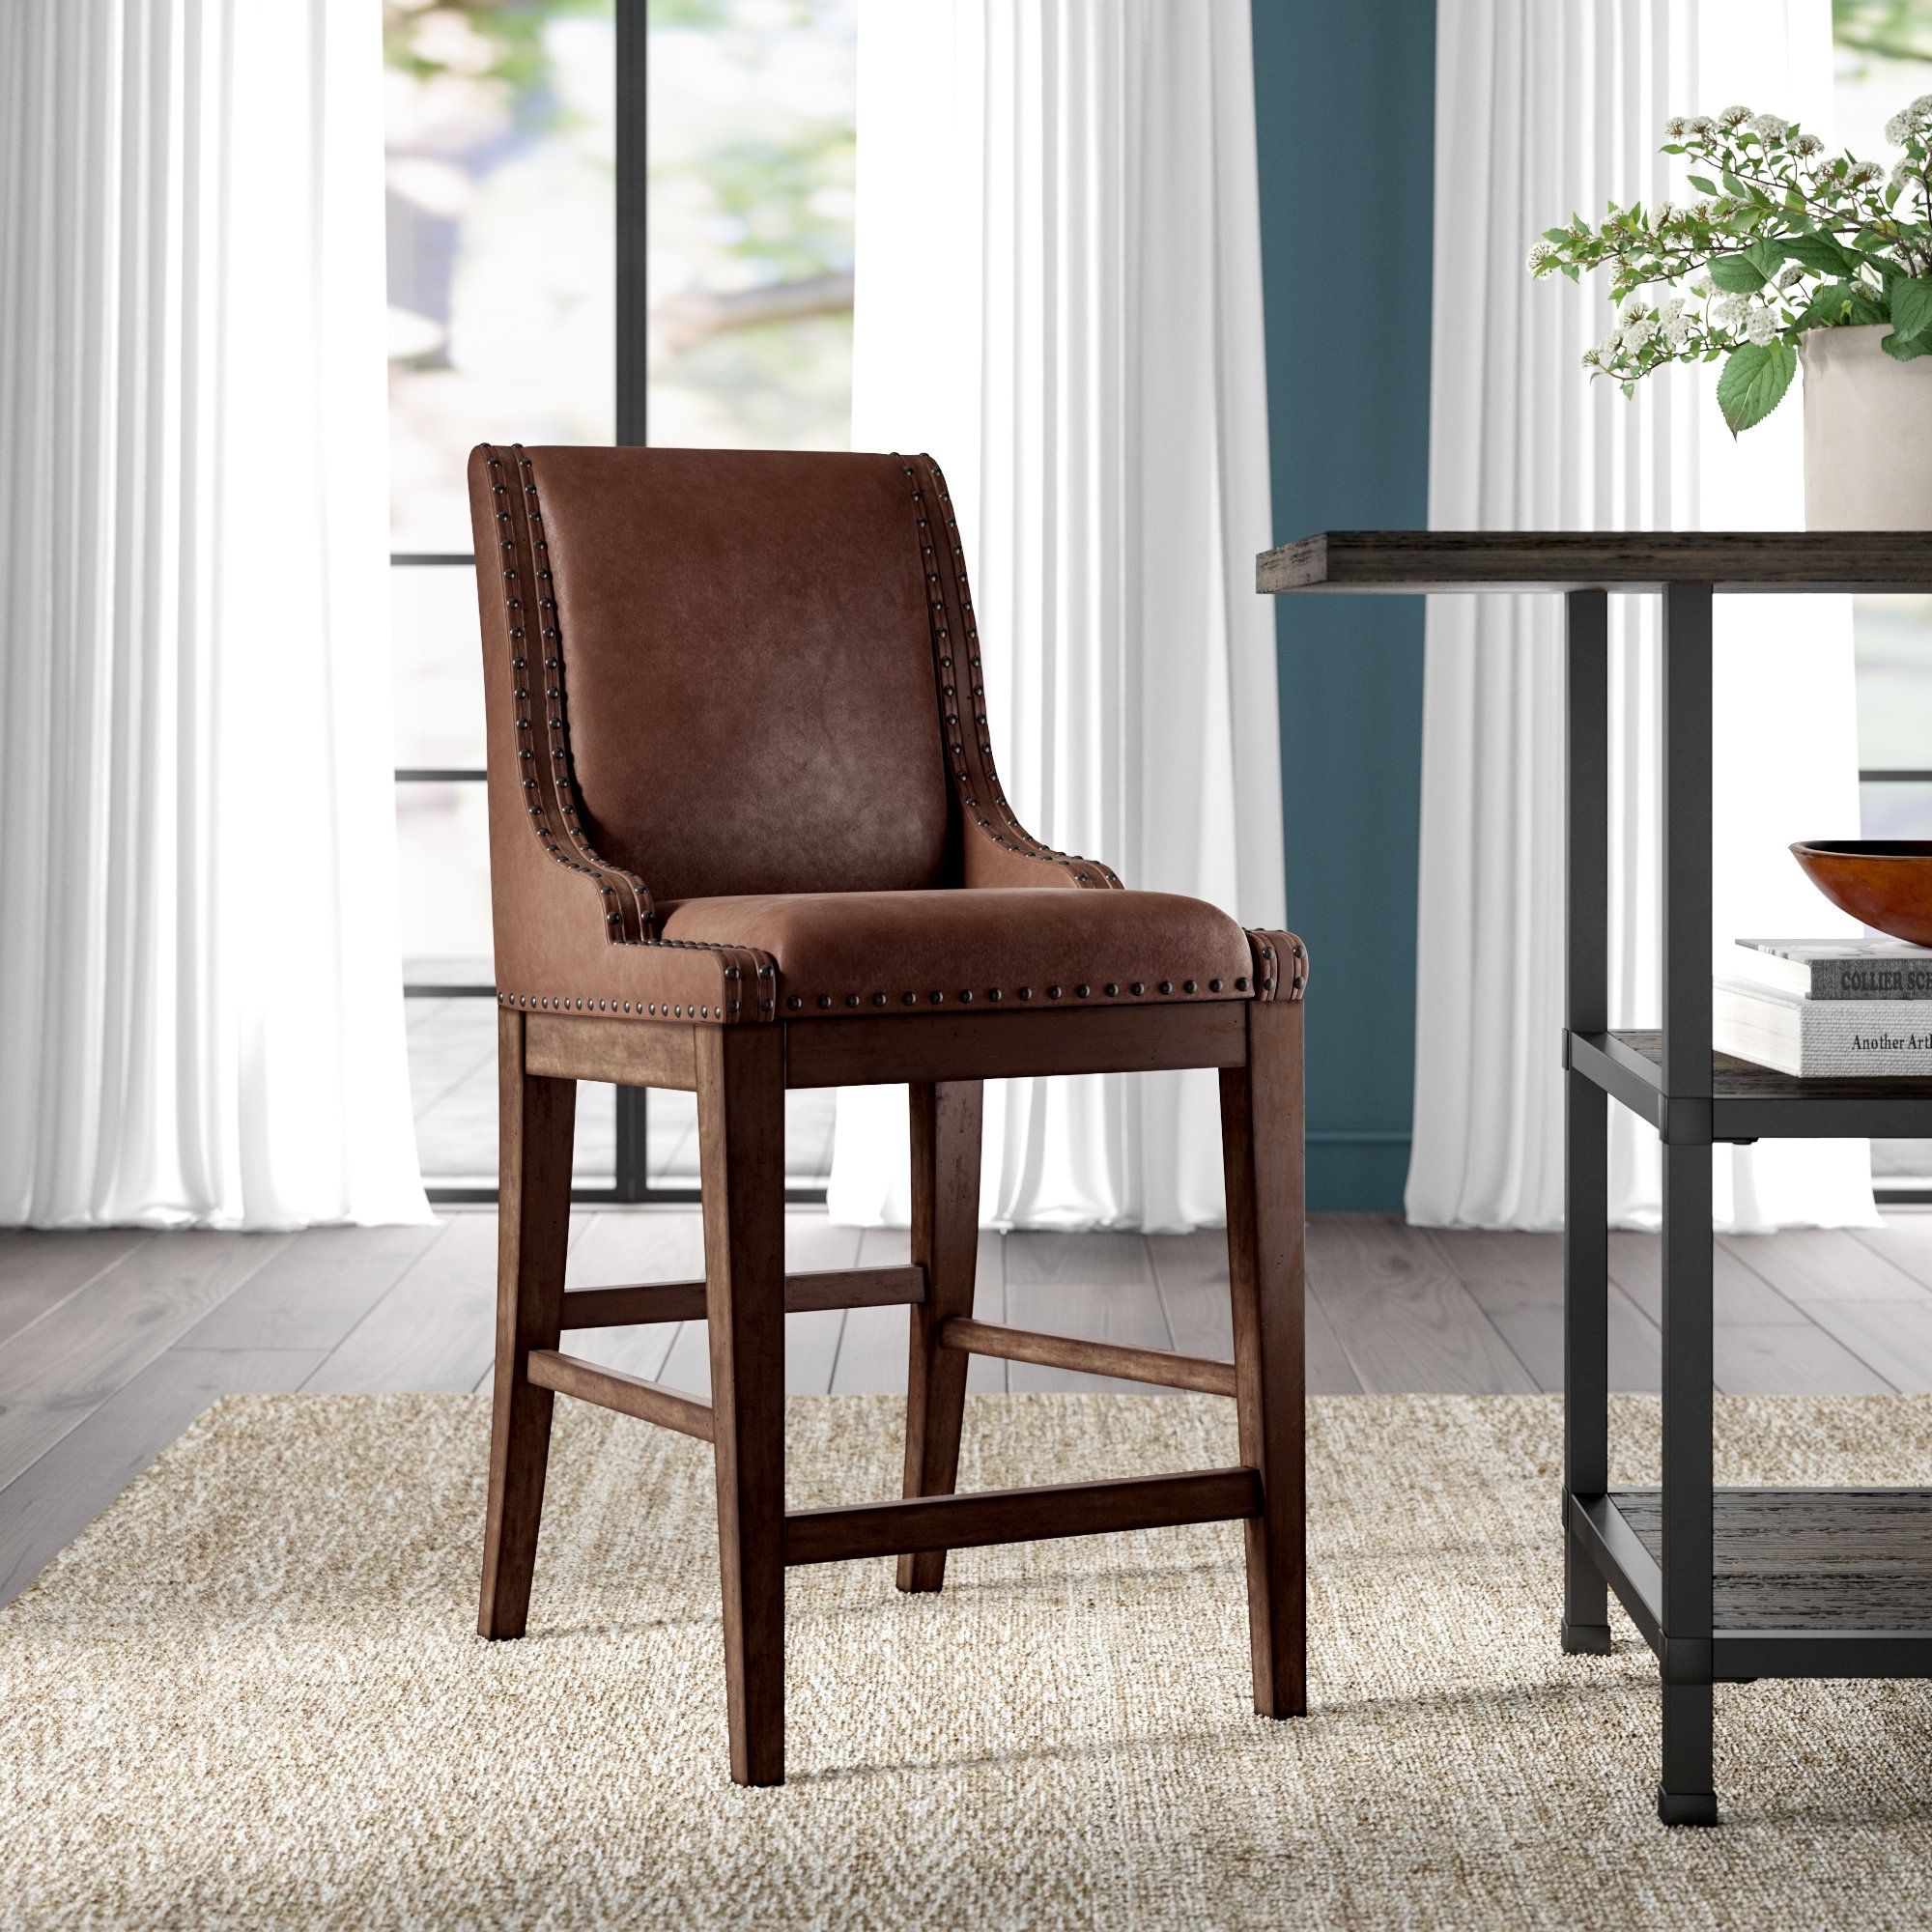 Most Recent Caira Upholstered Side Chairs For Greyleigh Cairo Upholstered Dining Chair (#12 of 20)